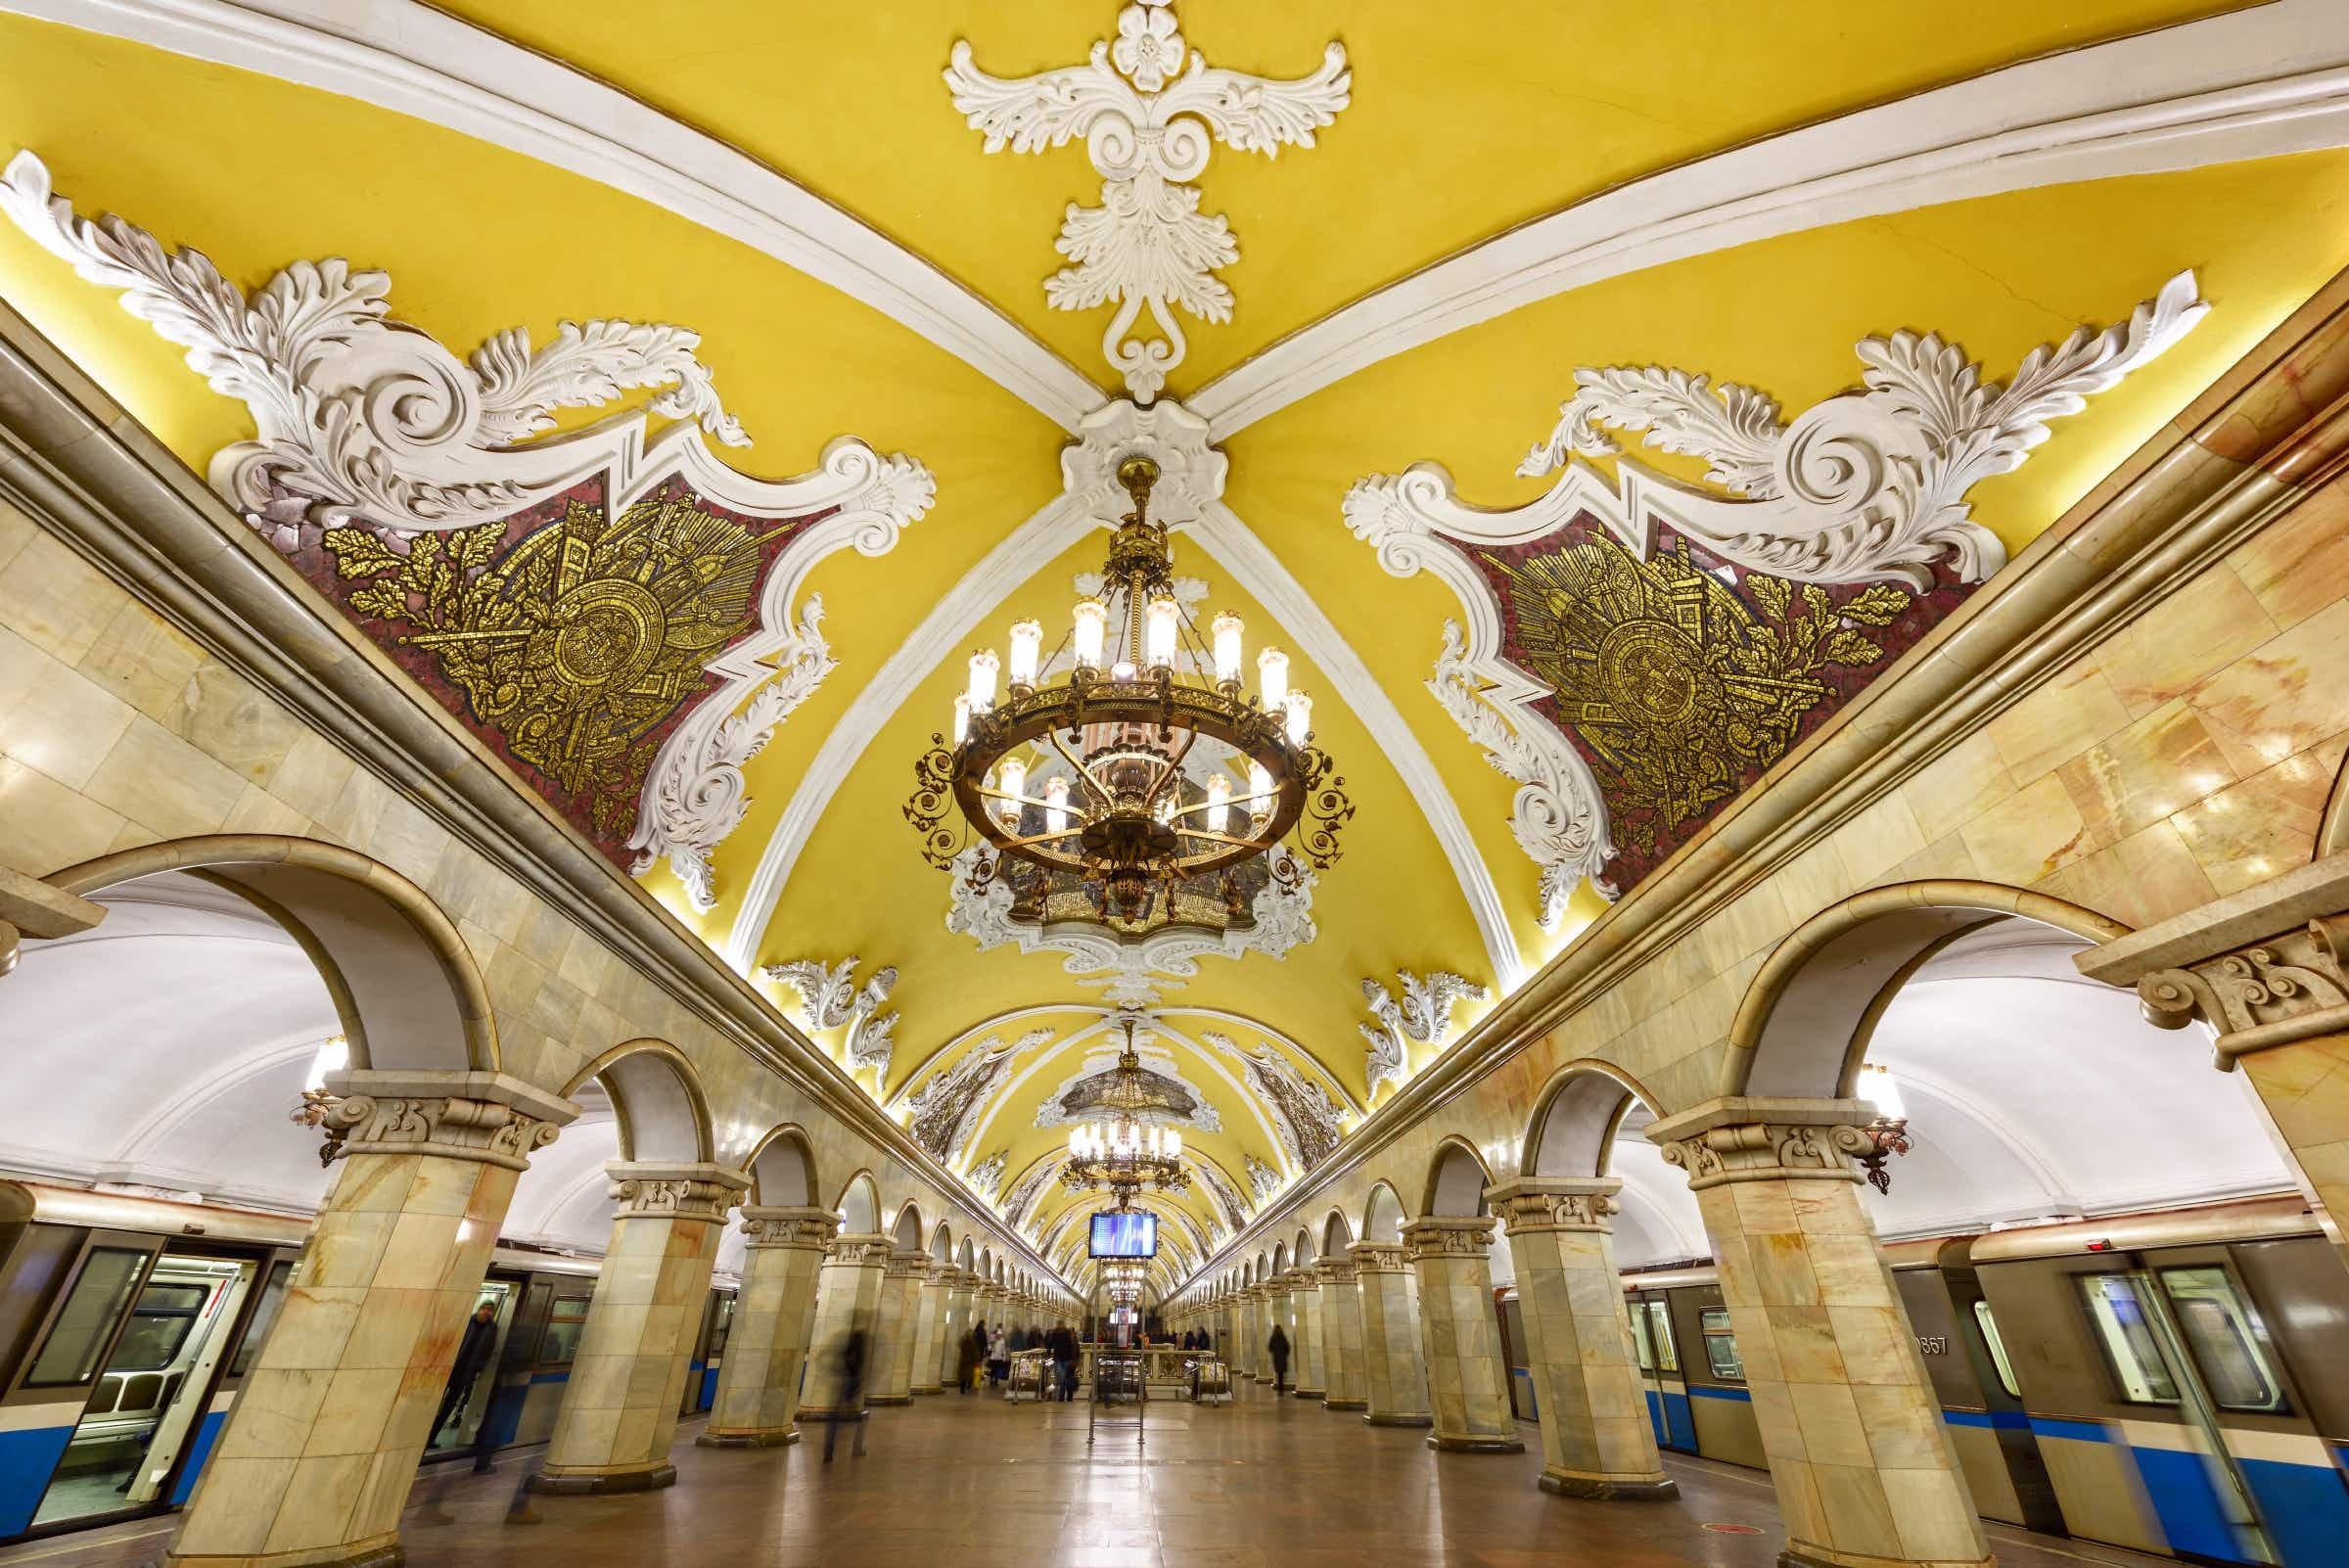 Football fans in Russia can now easily explore Moscow's famous Metro